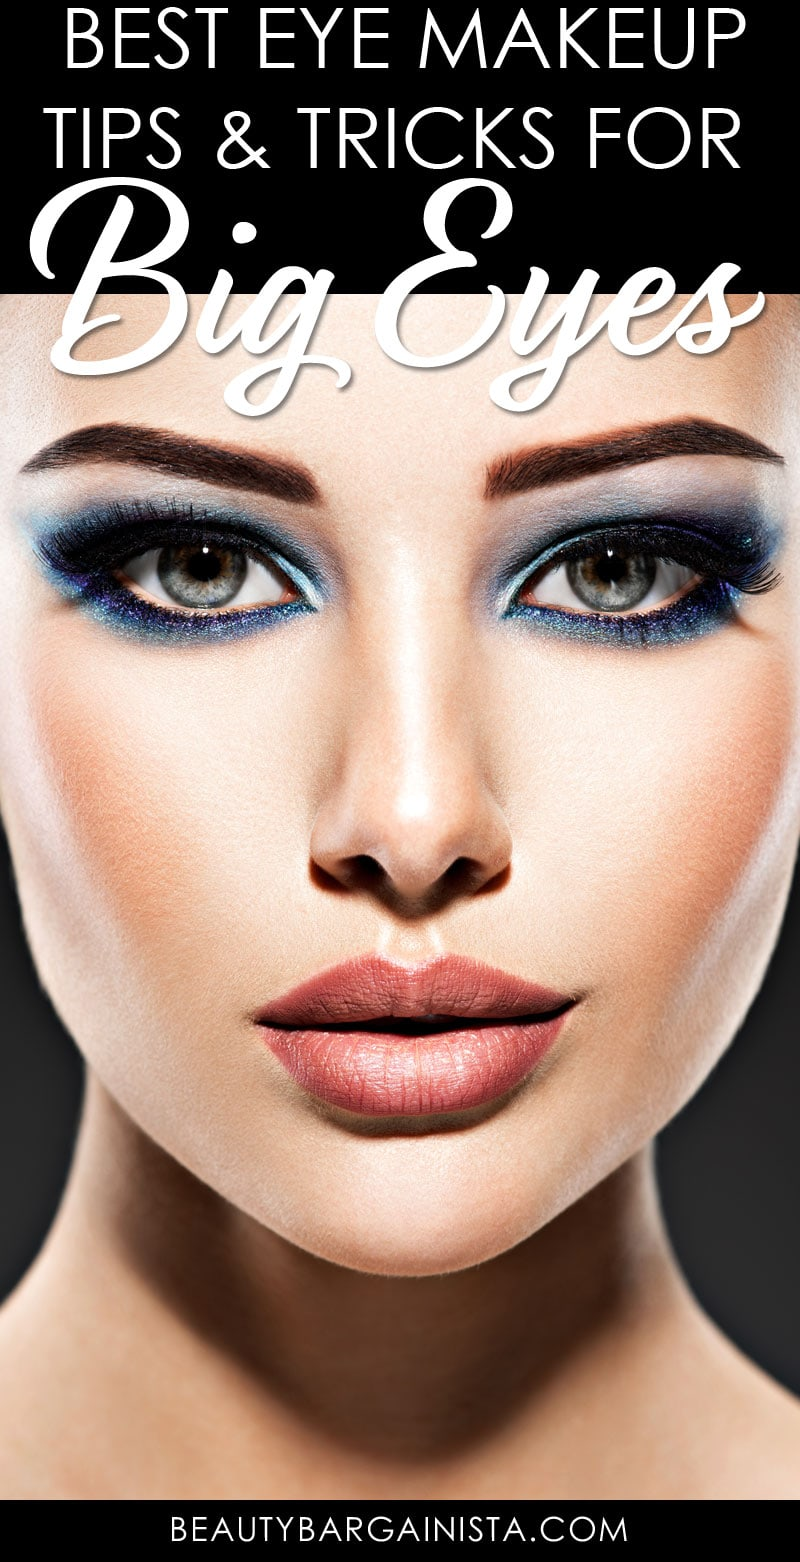 Eye Makeup For Big Eyelids: A Tutorial That Will Make Your